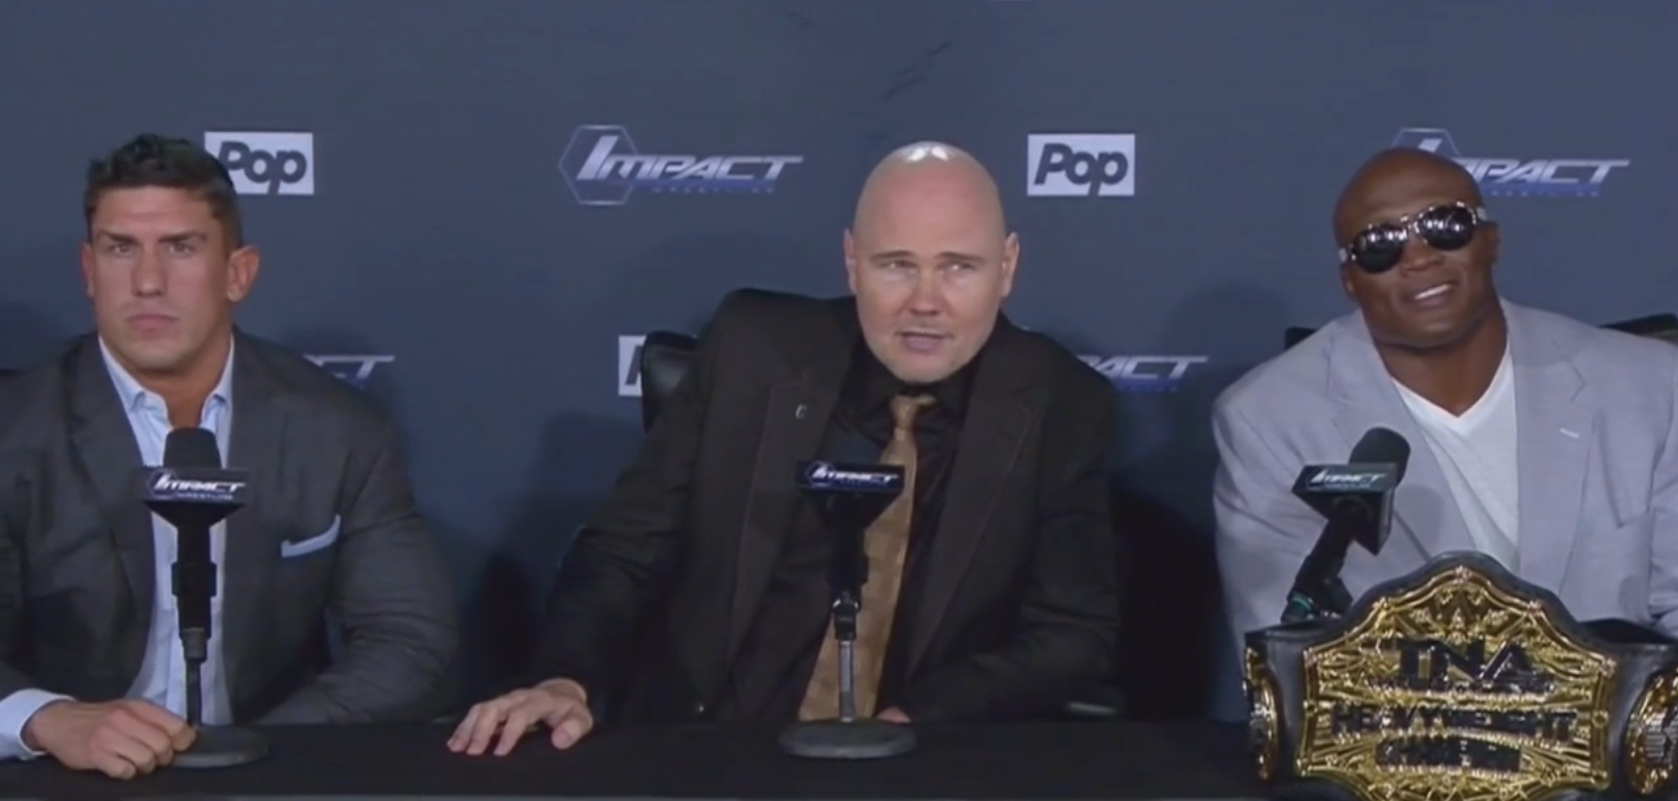 Corgan bfg press conf